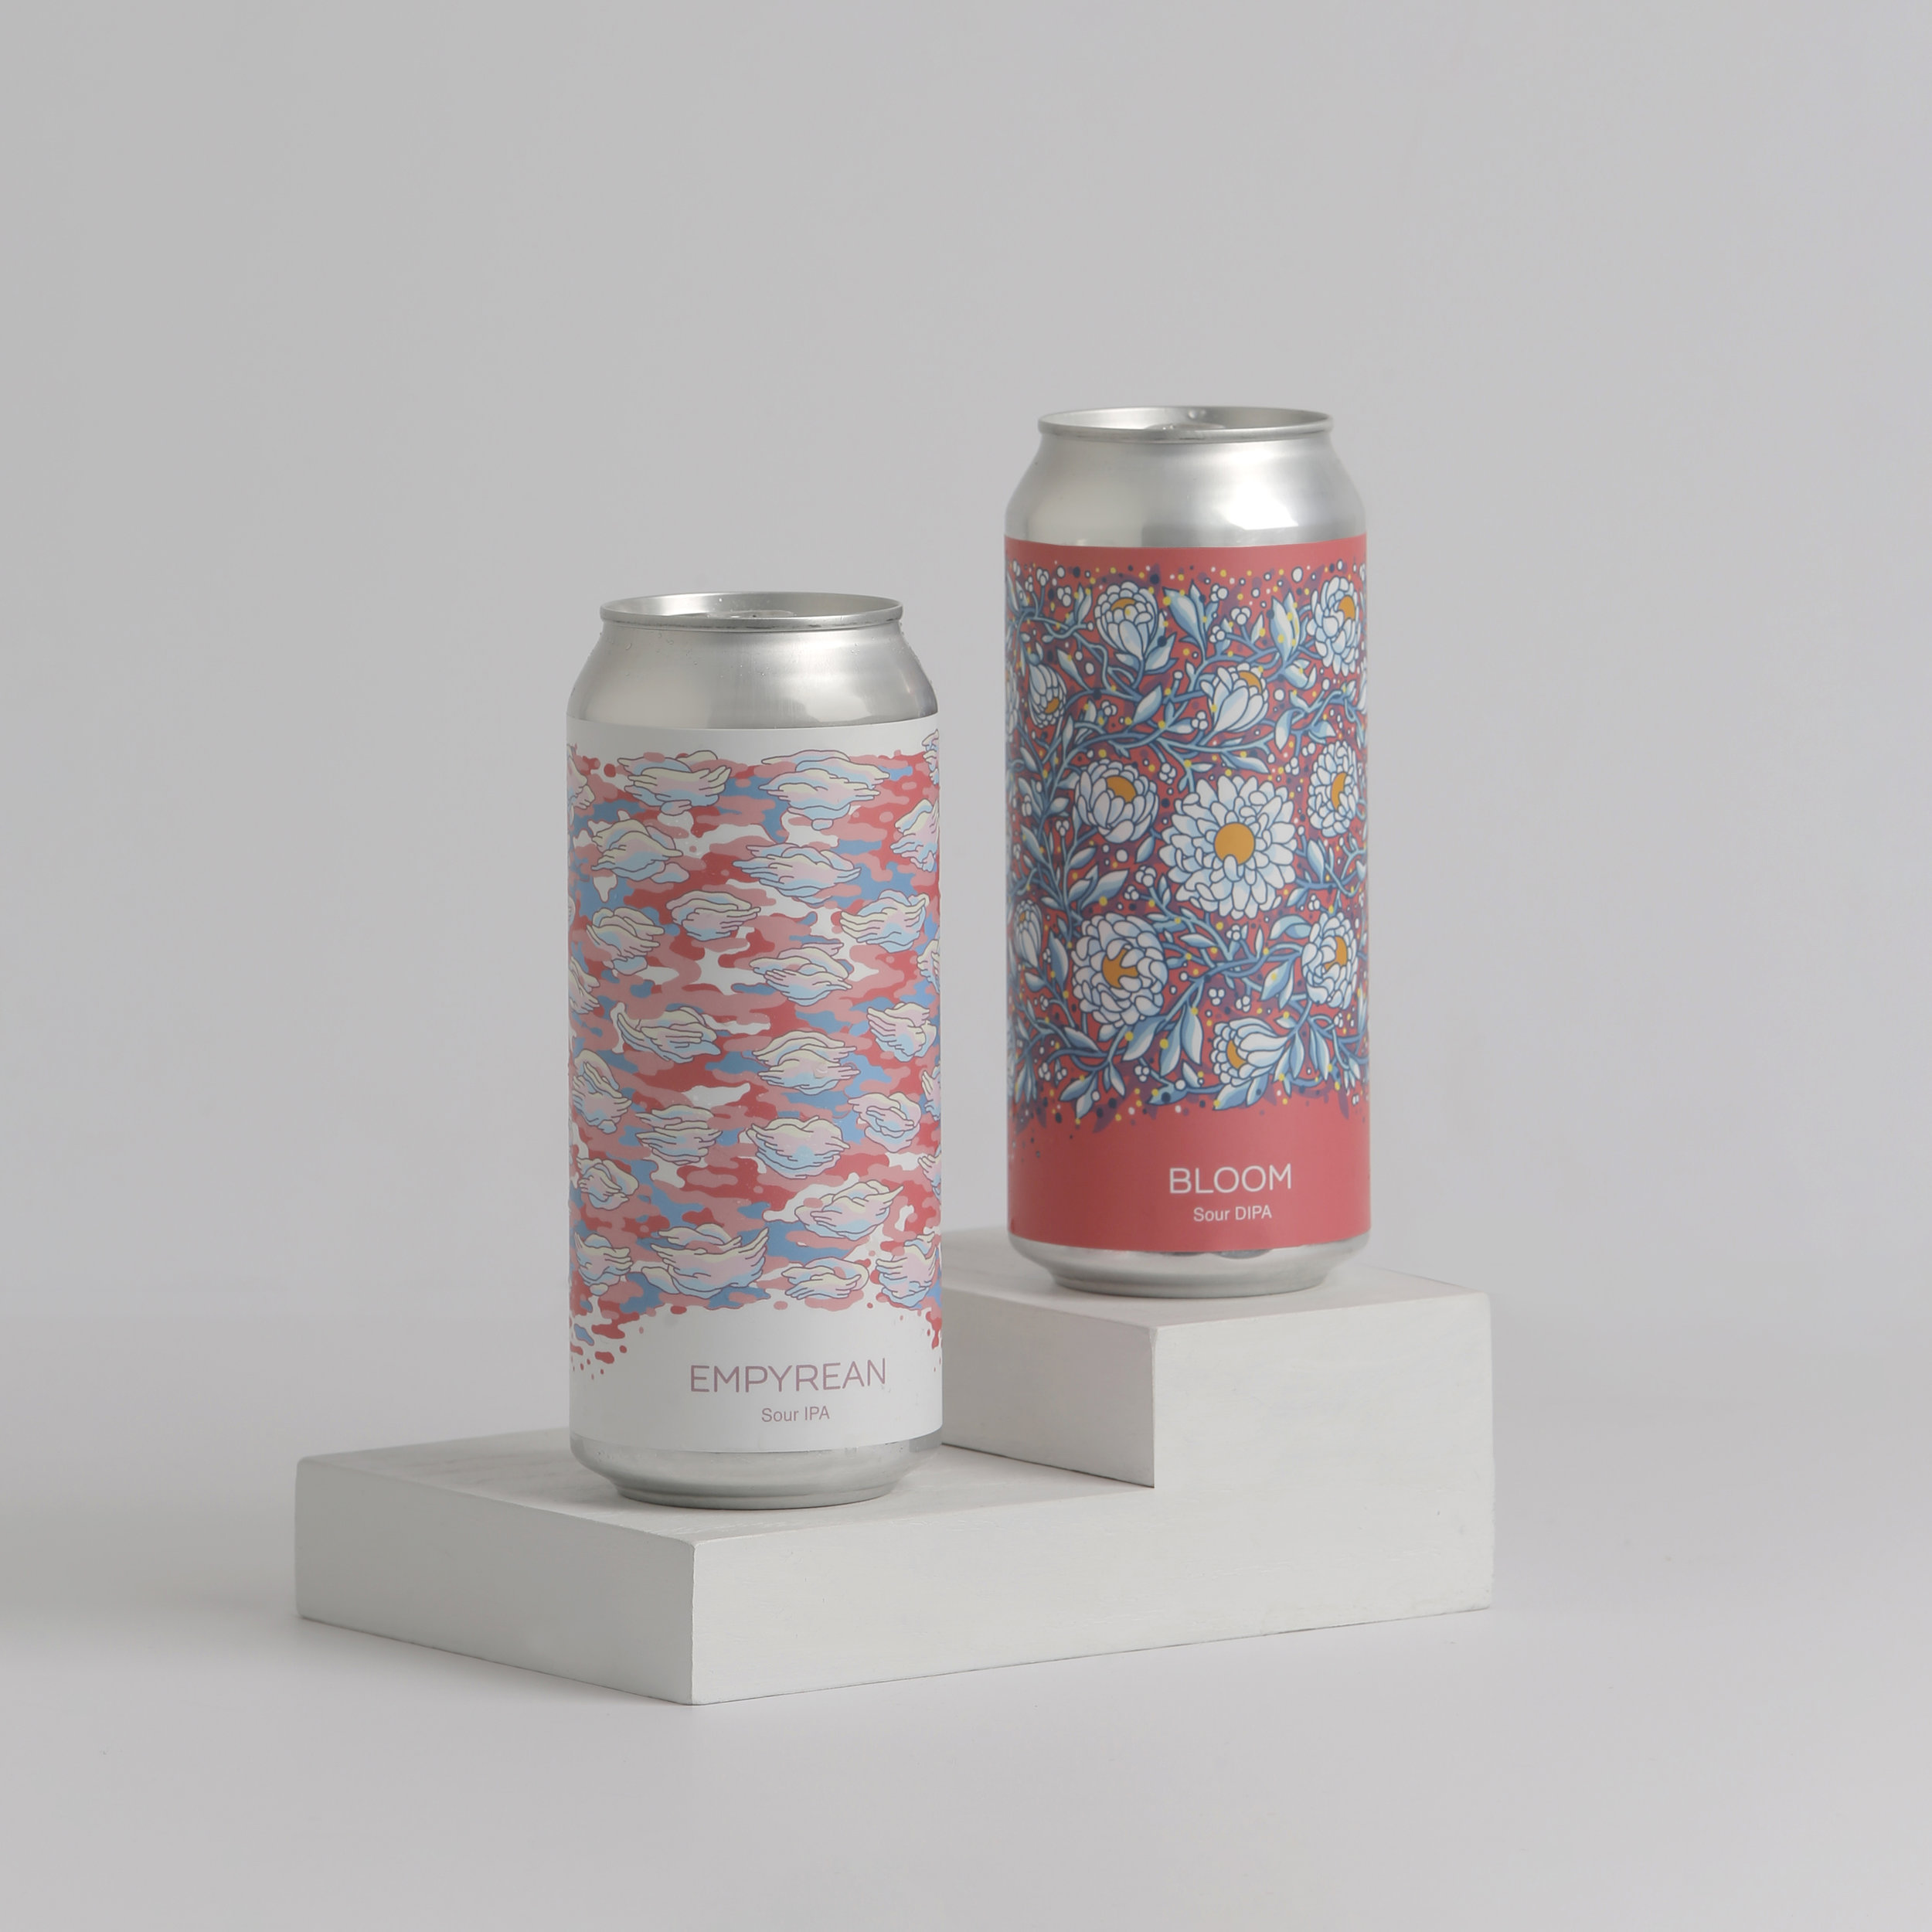 Cans of Bloom and Empyrean